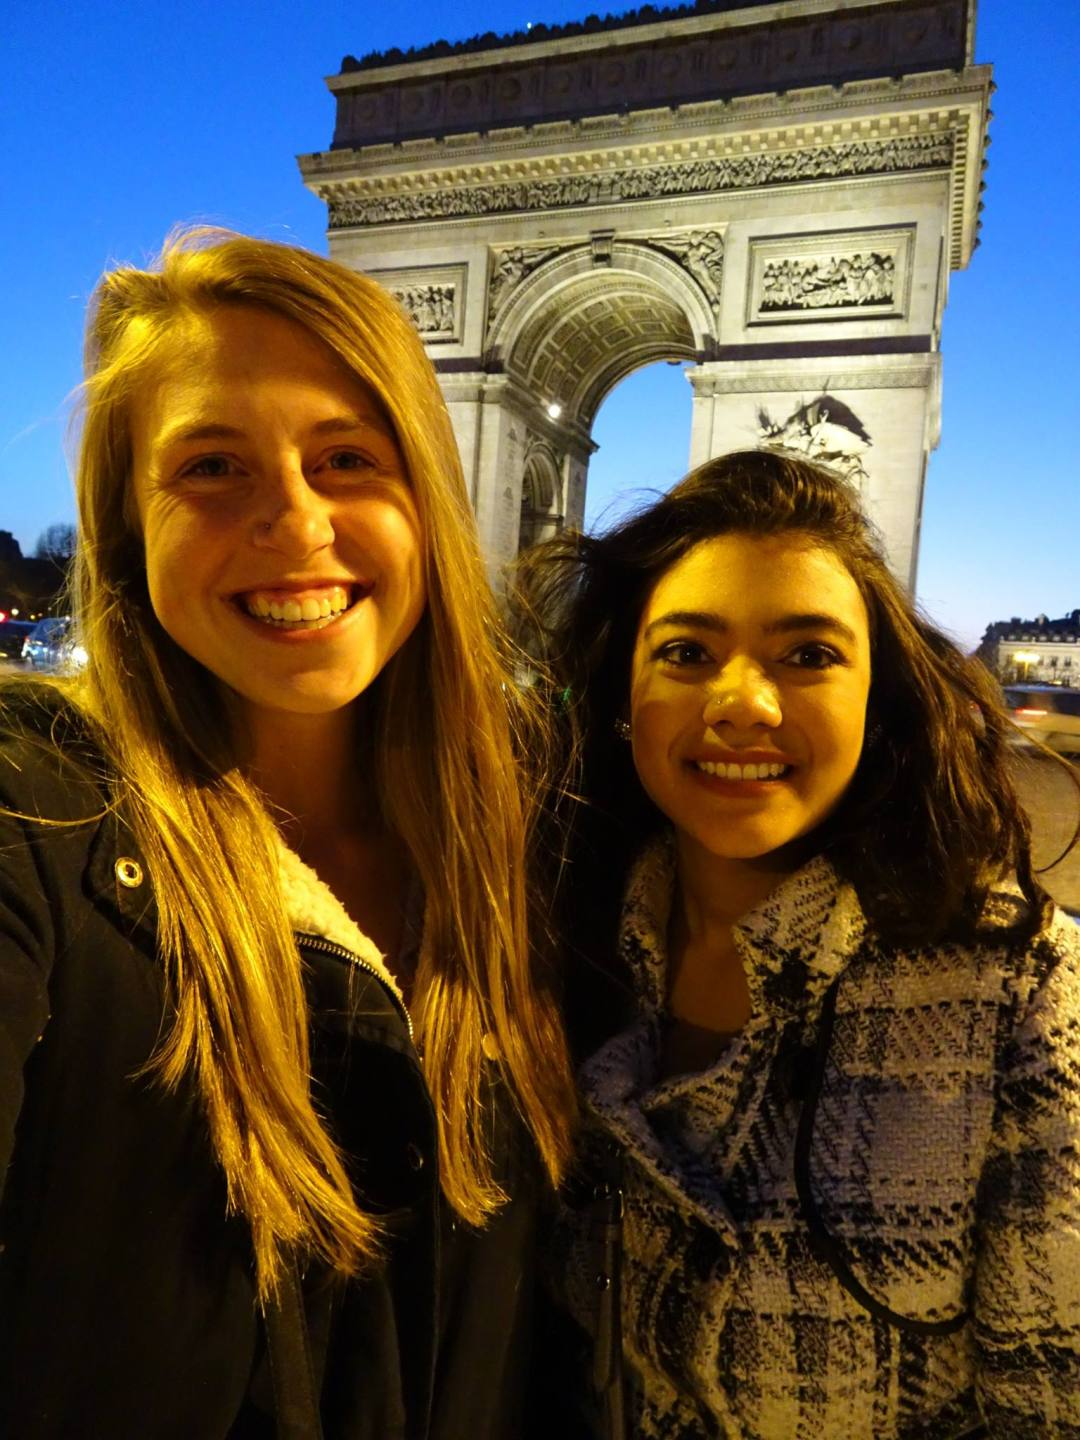 2 Days in Paris: Arc du Triomphe in background, 2 girls in foreground